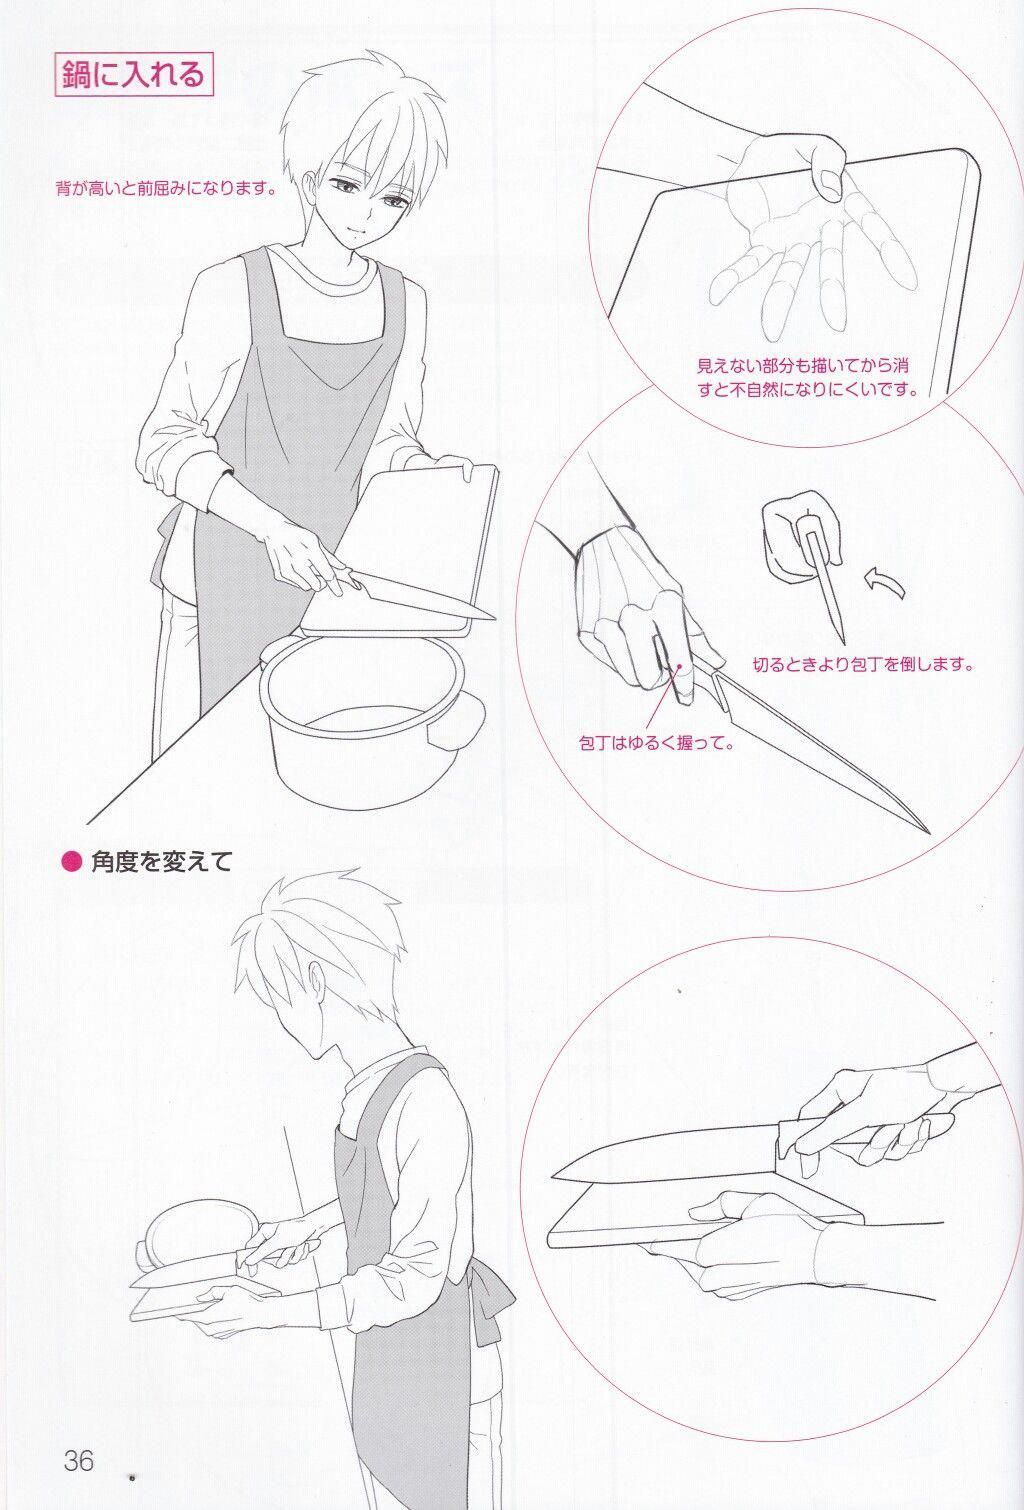 Cooking Chicken CookingMeme Hand drawing reference